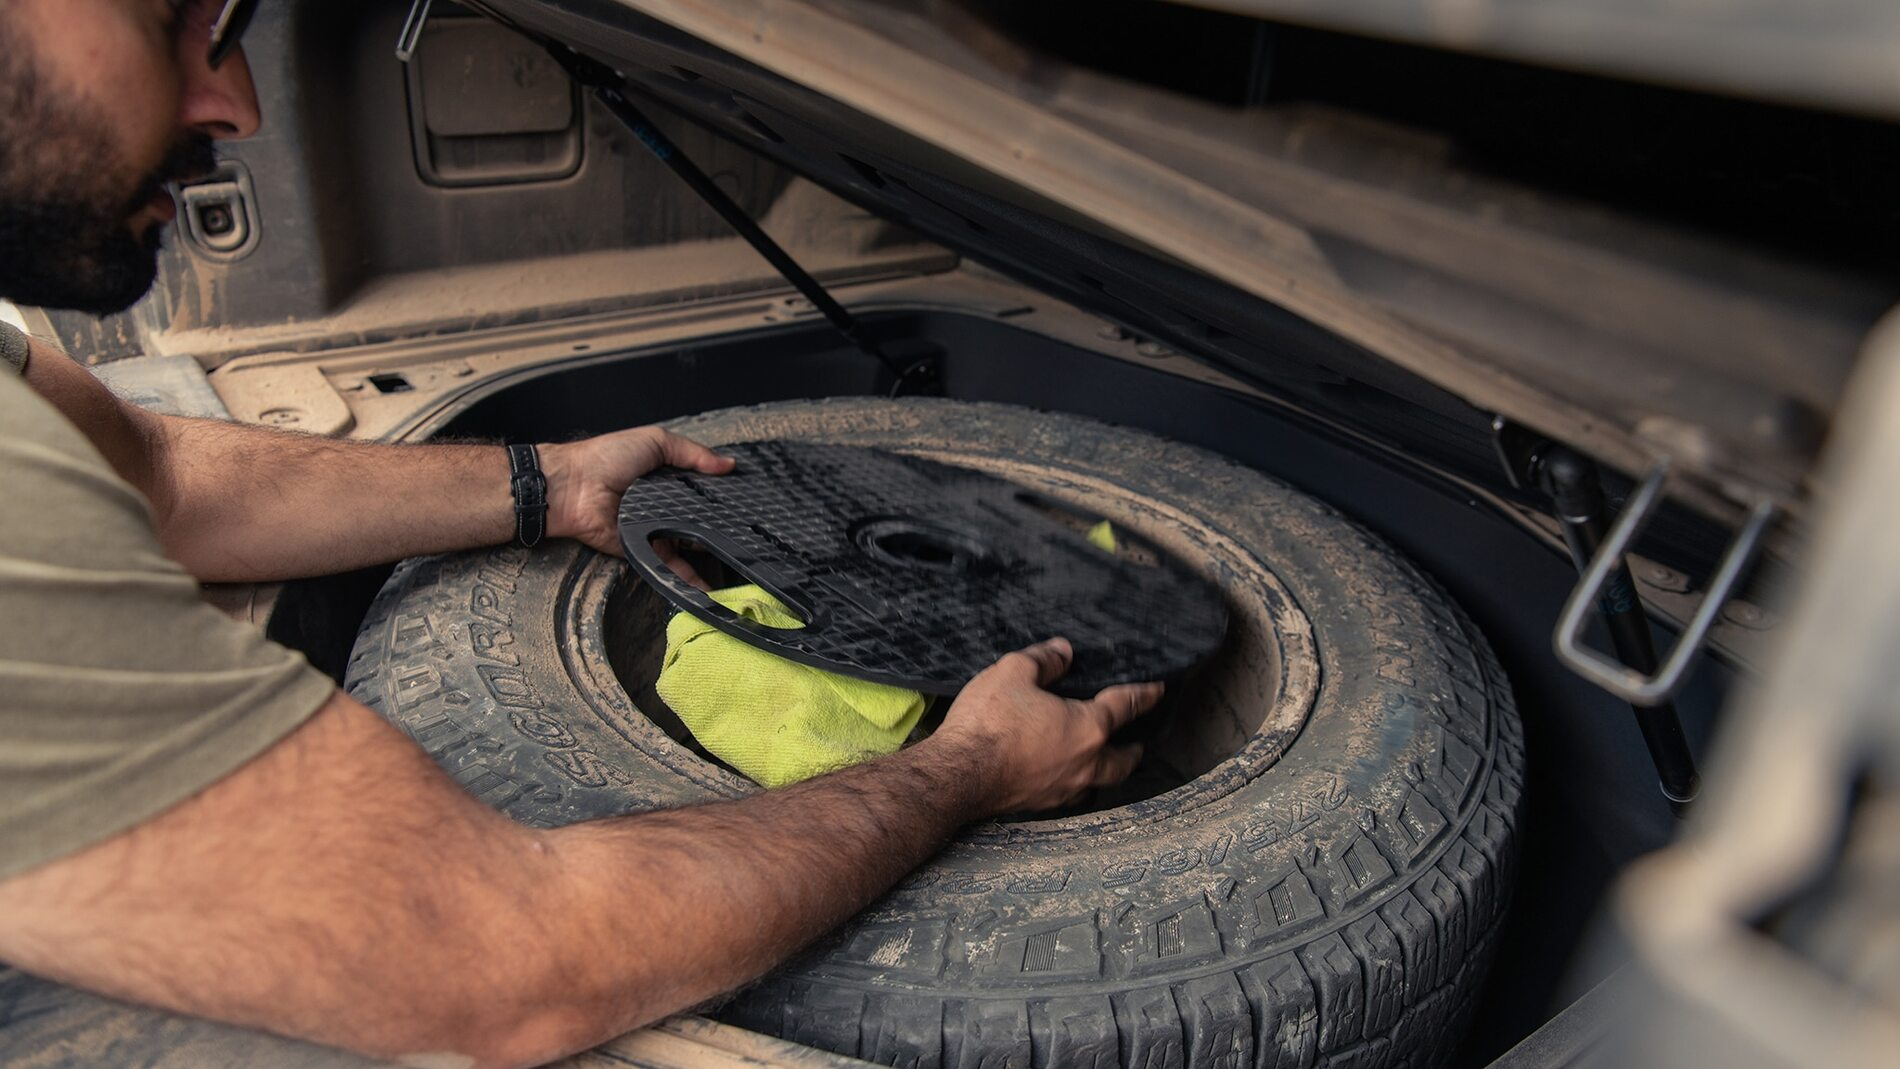 2022-Rivian-R1T-Spare-Tire-Explained-6.jpg